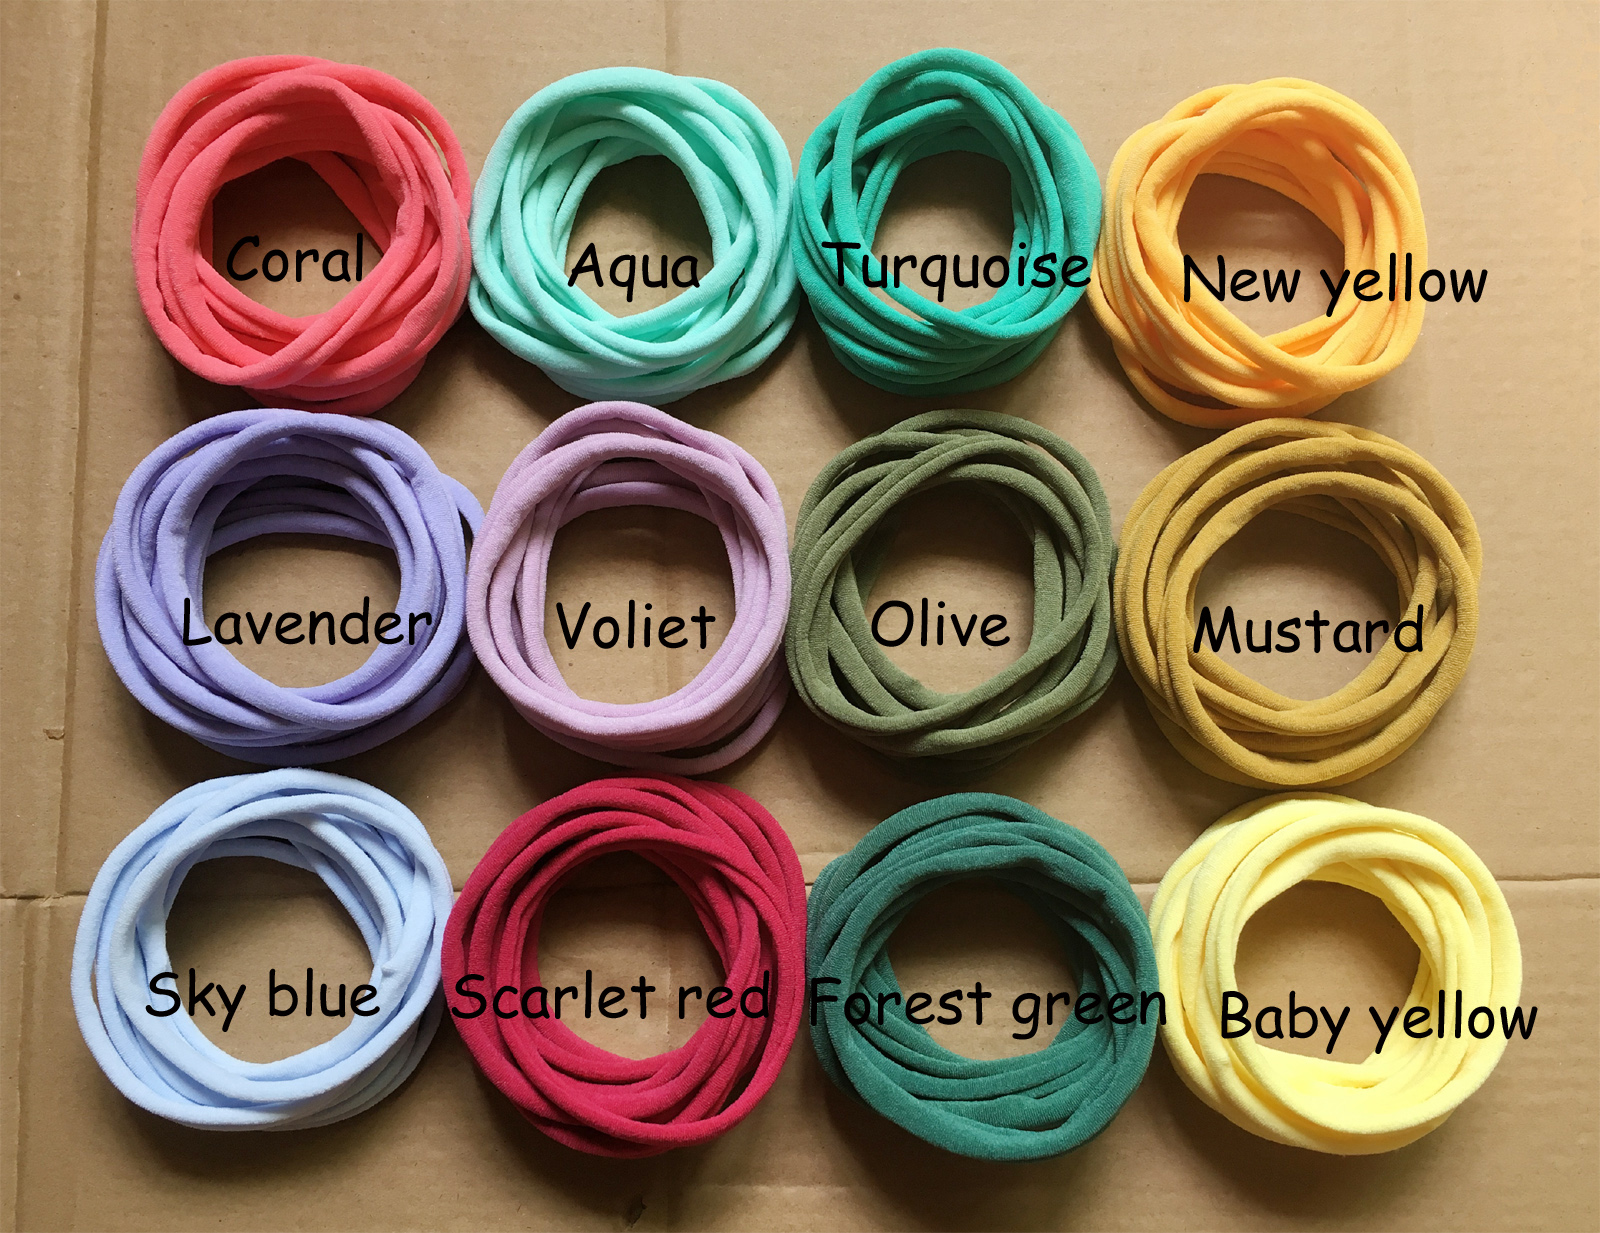 1500 Pcs/lot, New Solid Color Nylon Elastic Headbands Super Soft Stretchy Nylon Headbands, One Size Fits Most